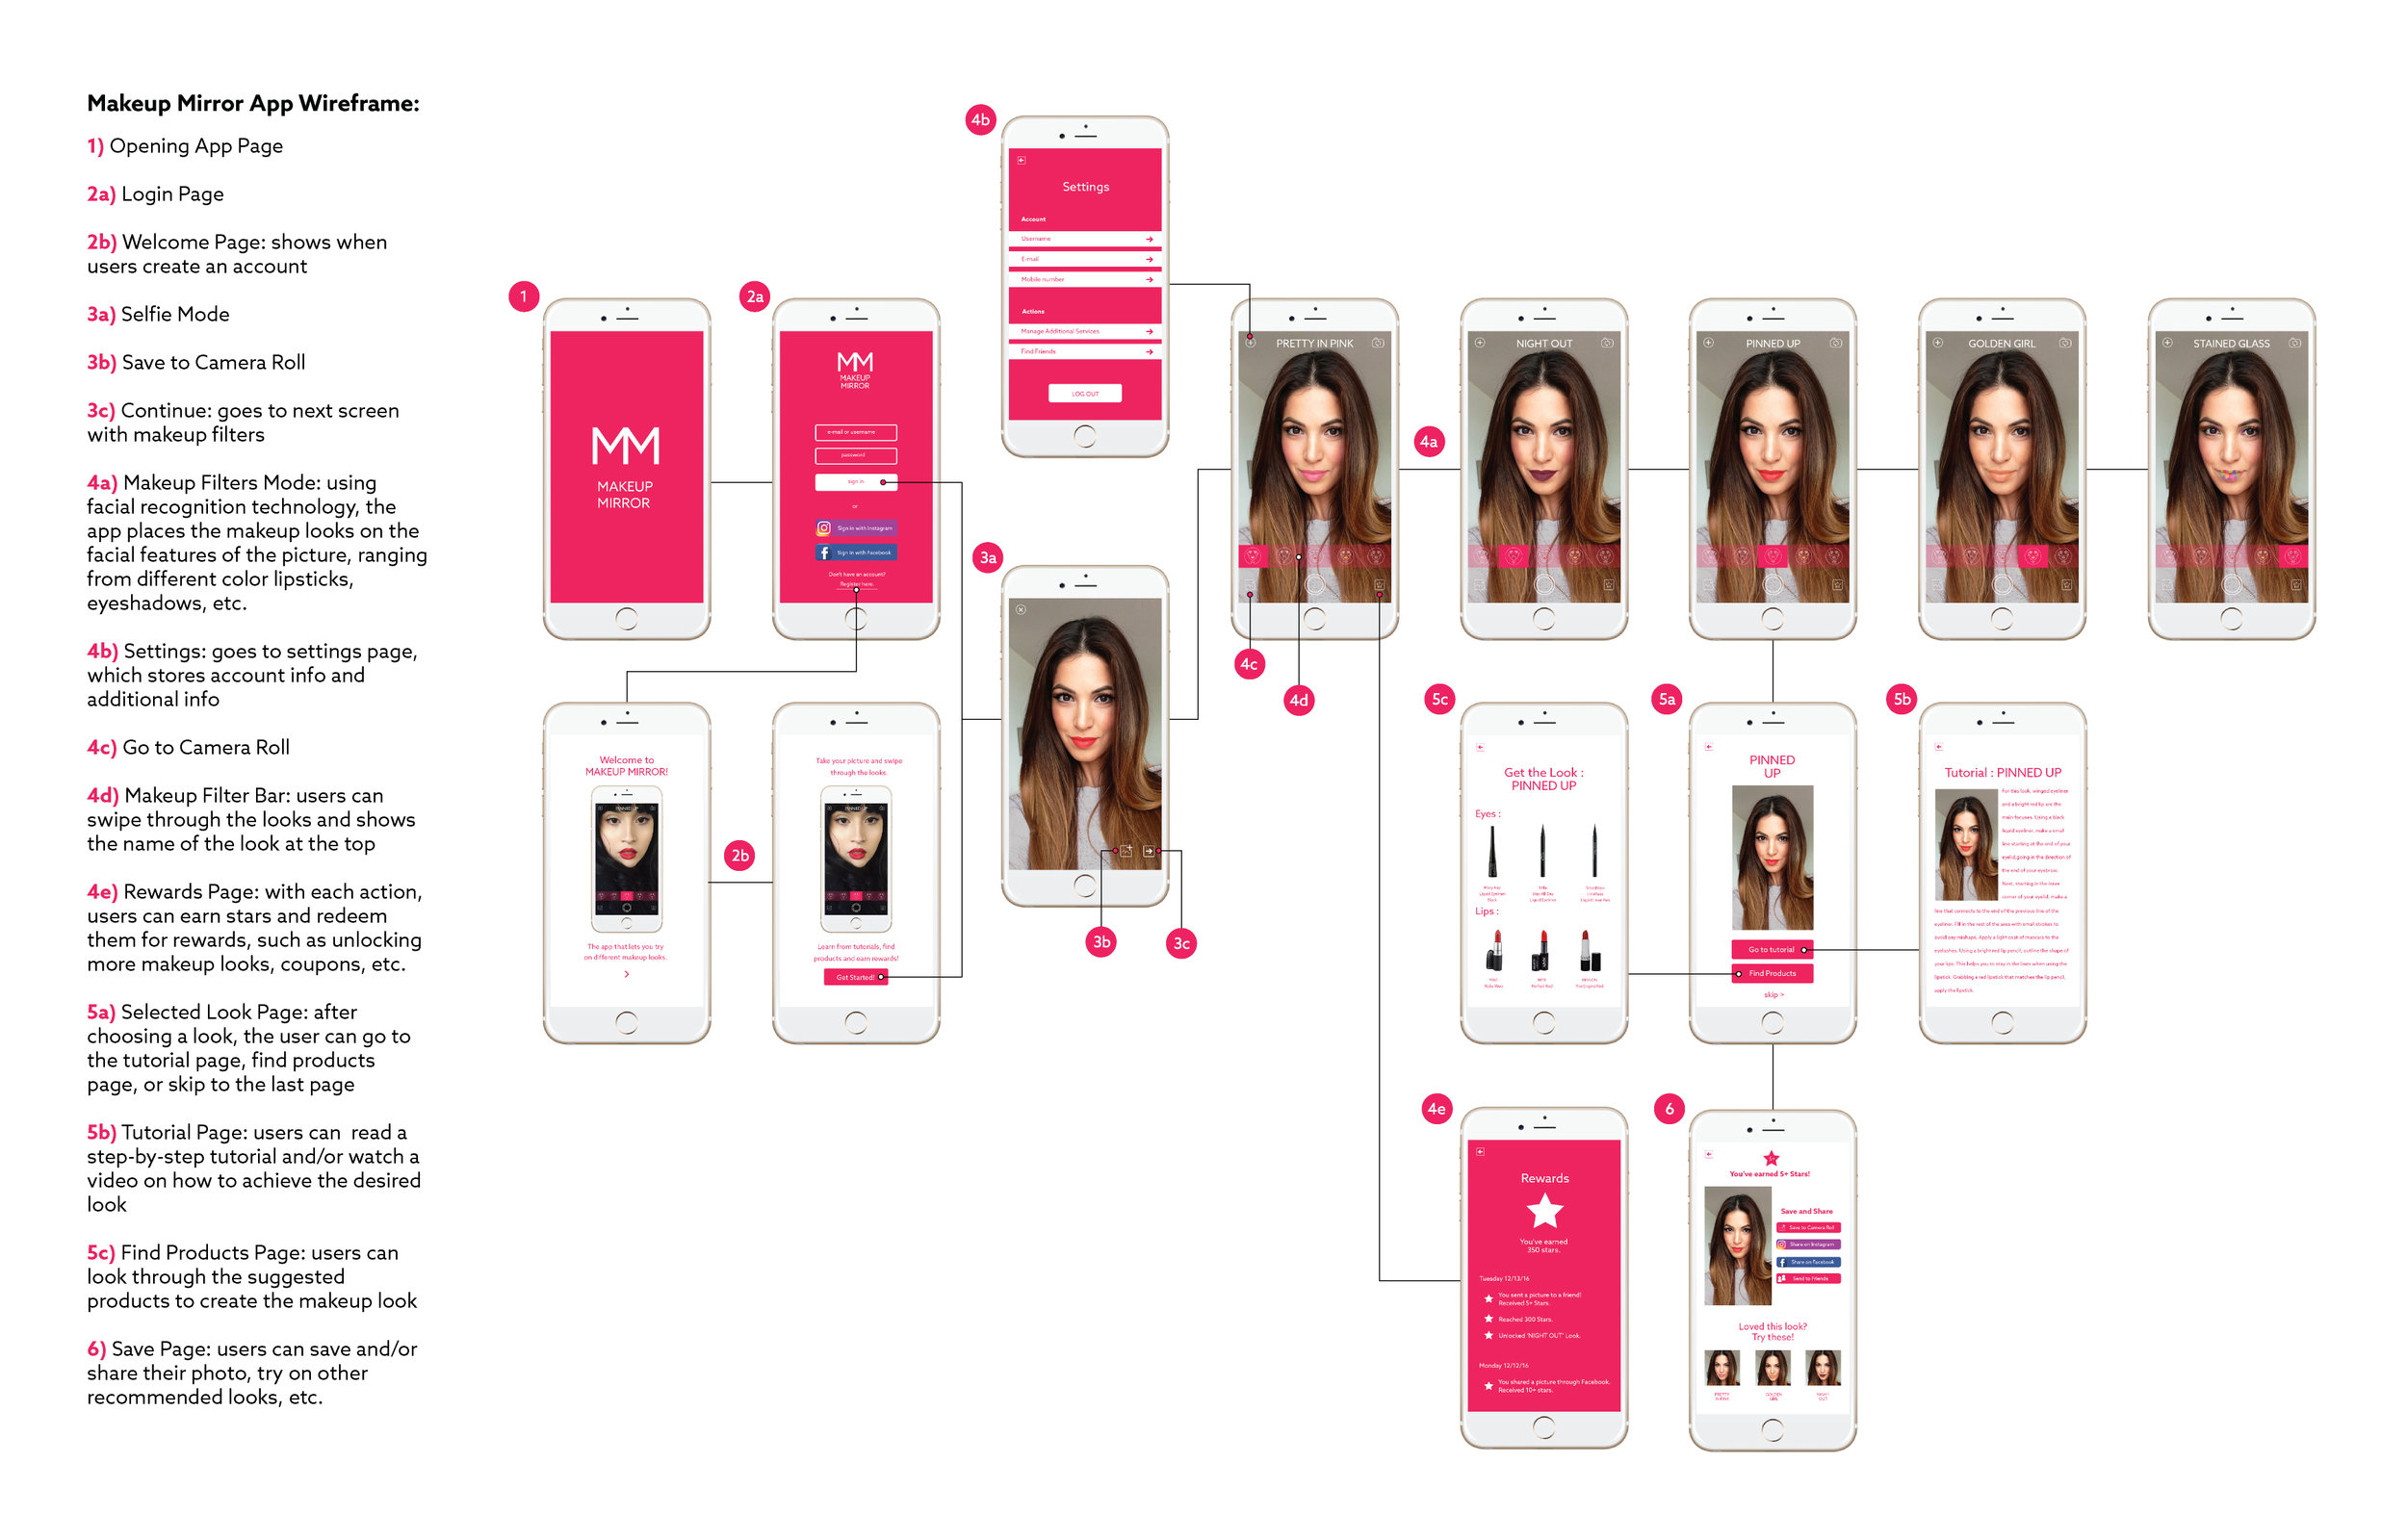 Wireframe of Makeup Mirror App